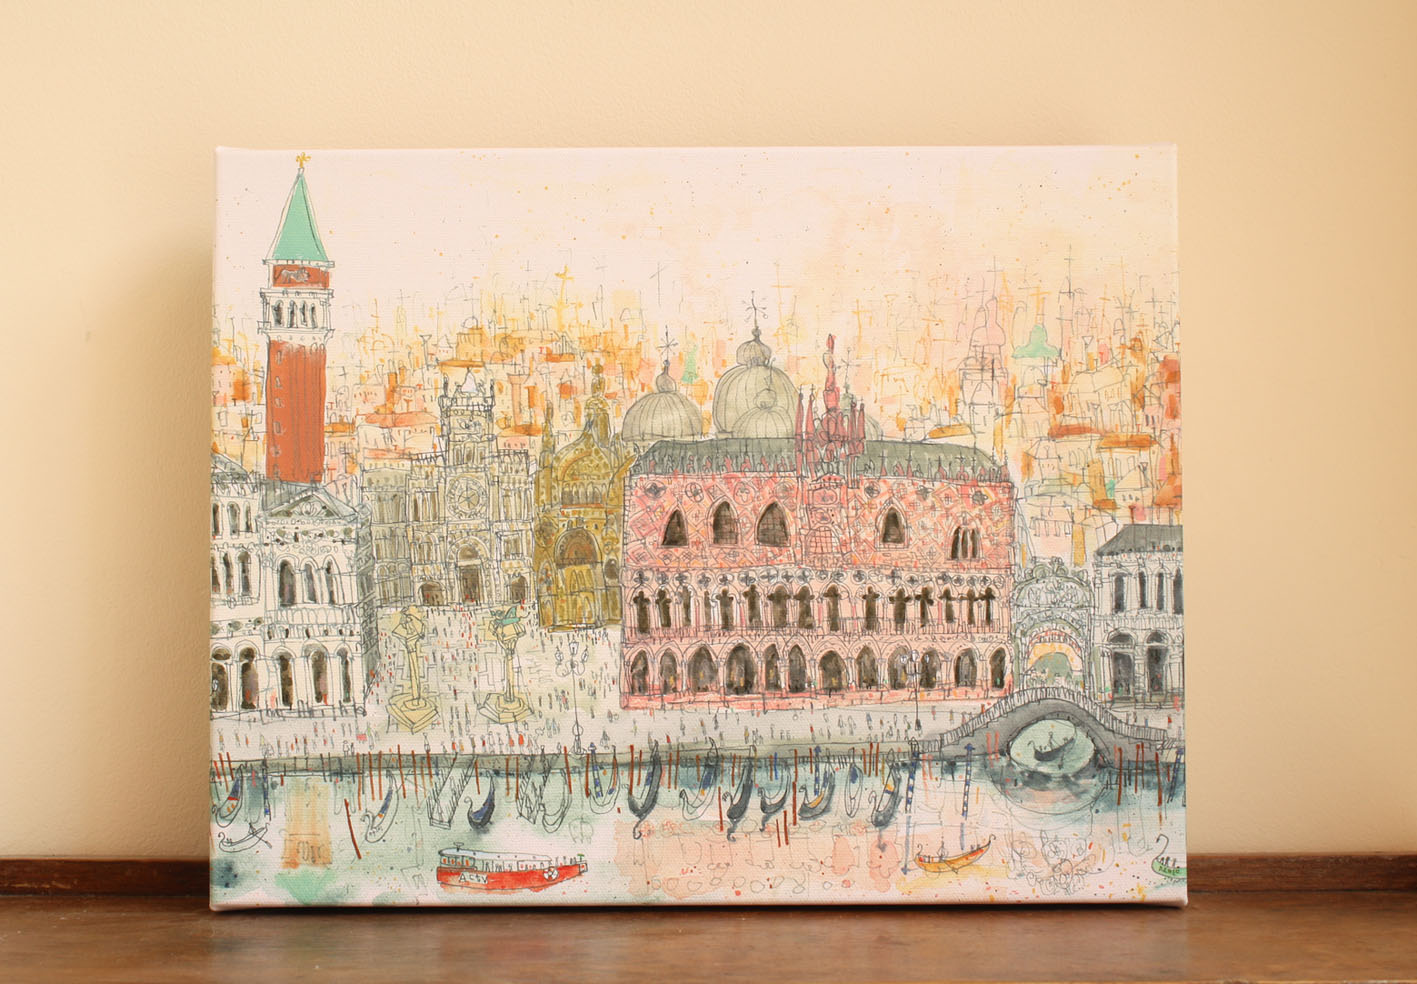 arriving_at_piazza_san_marco_6_clare_caulfield.jpg